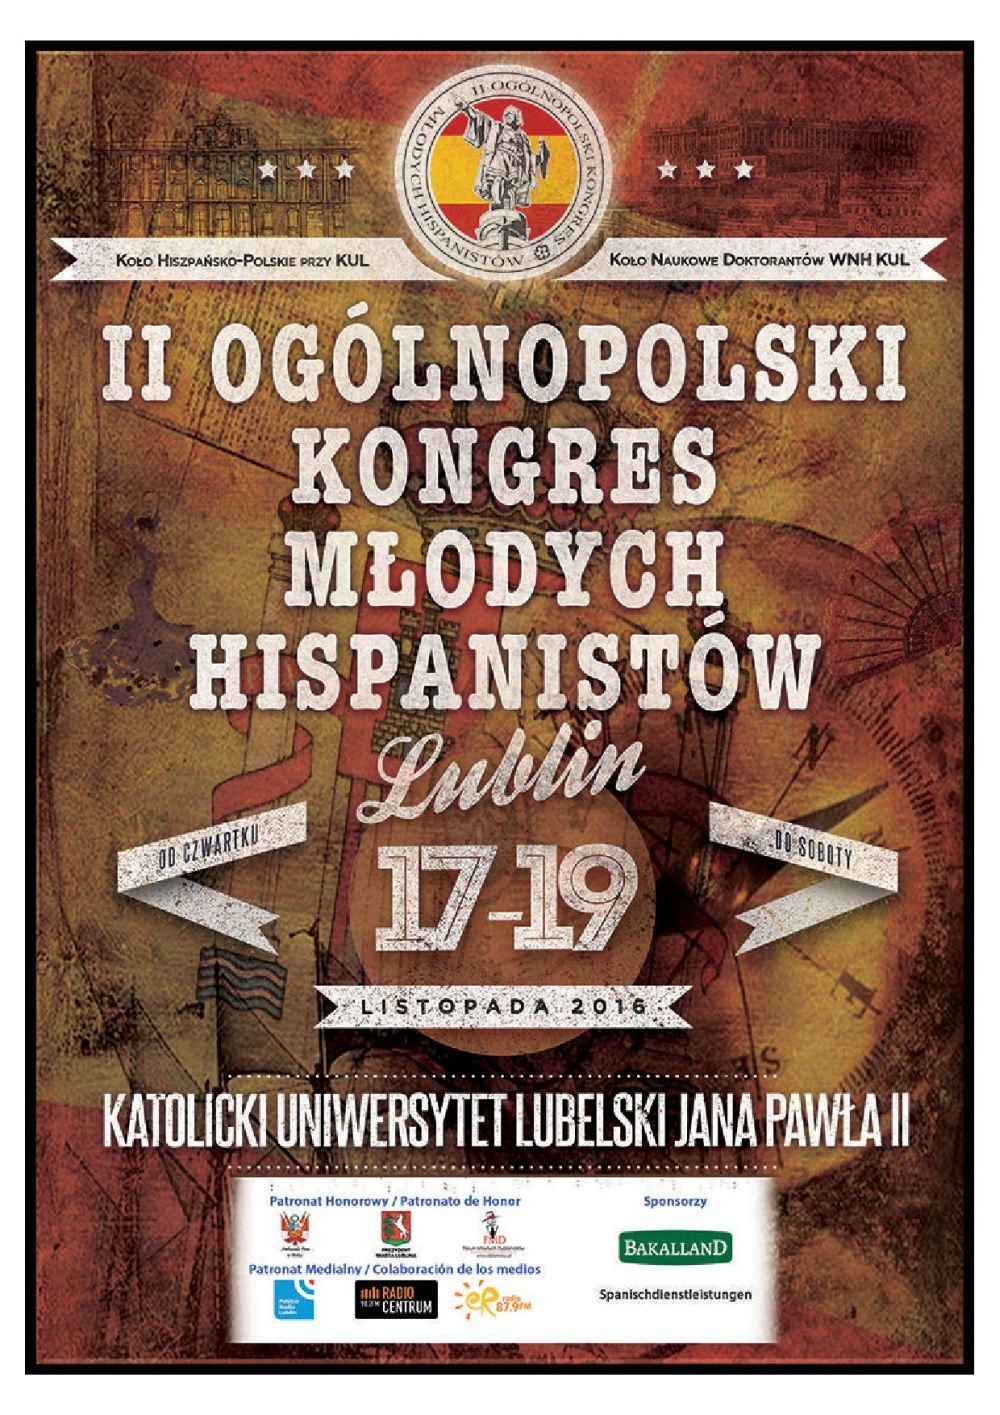 kongres hispanistów